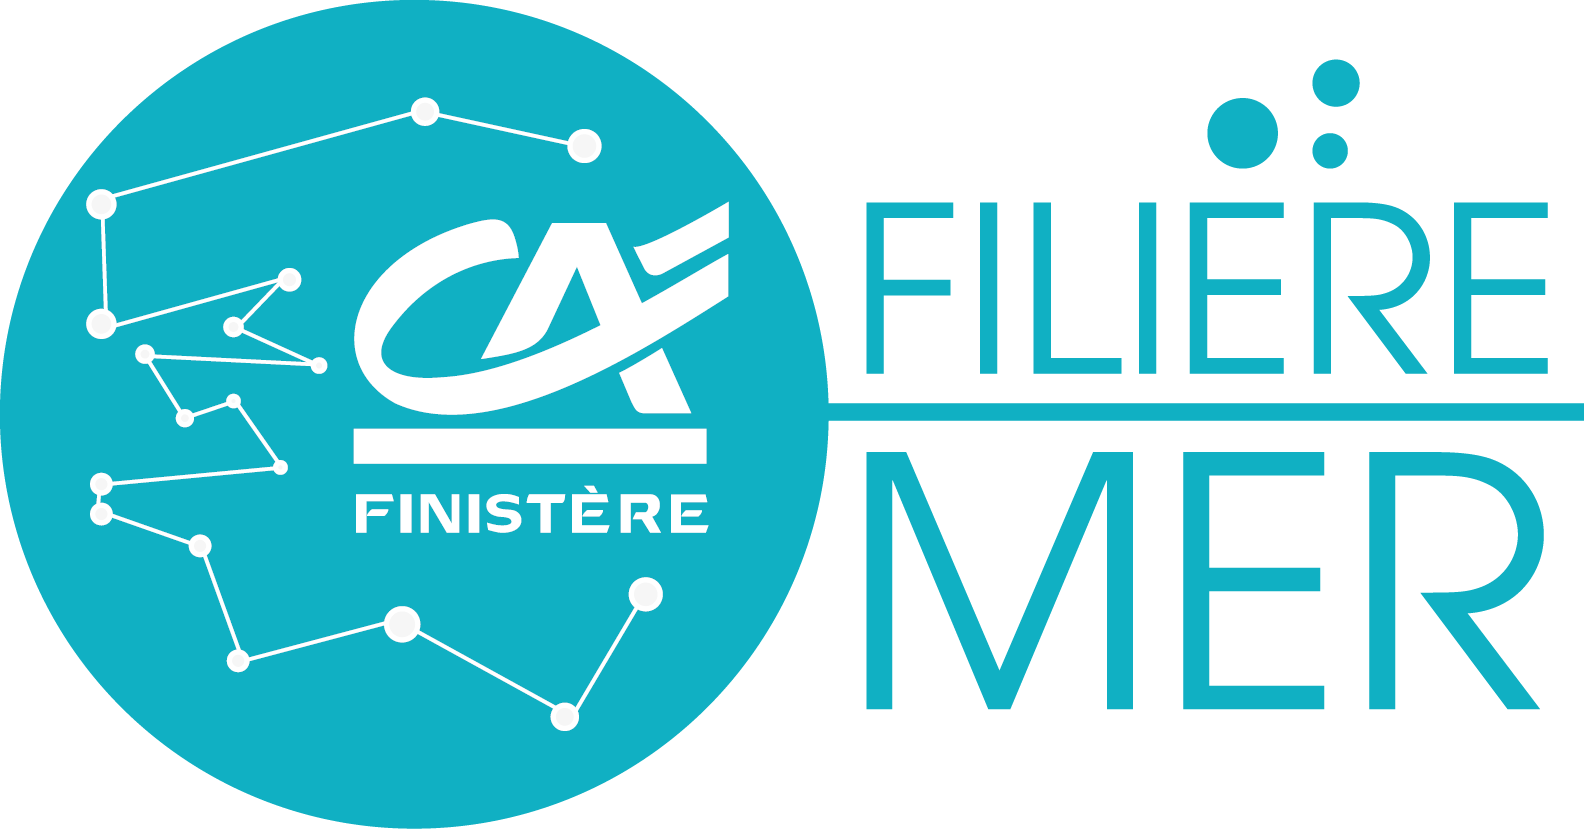 FILIERE MER CREDIT AGRICOLE DU FINISTERE